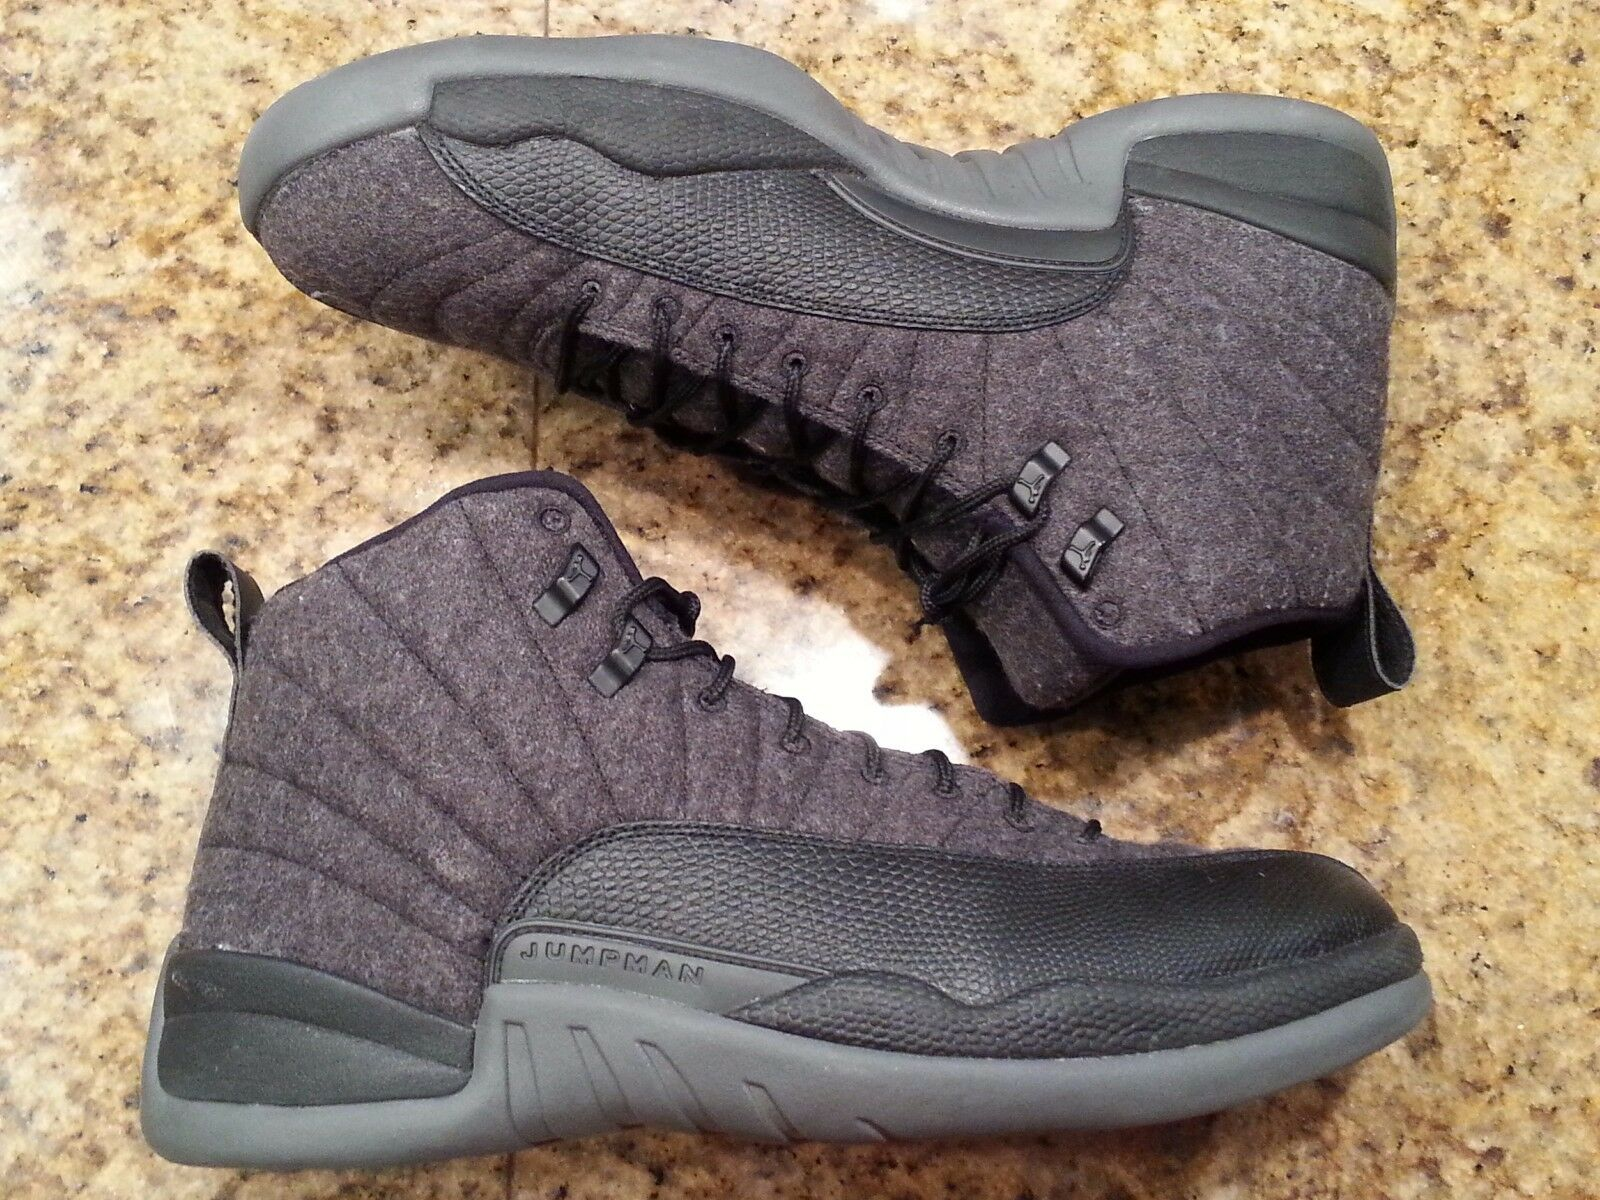 2018 Nike Air Jordan 12 XII Retro Wool Comfortable The latest discount shoes for men and women